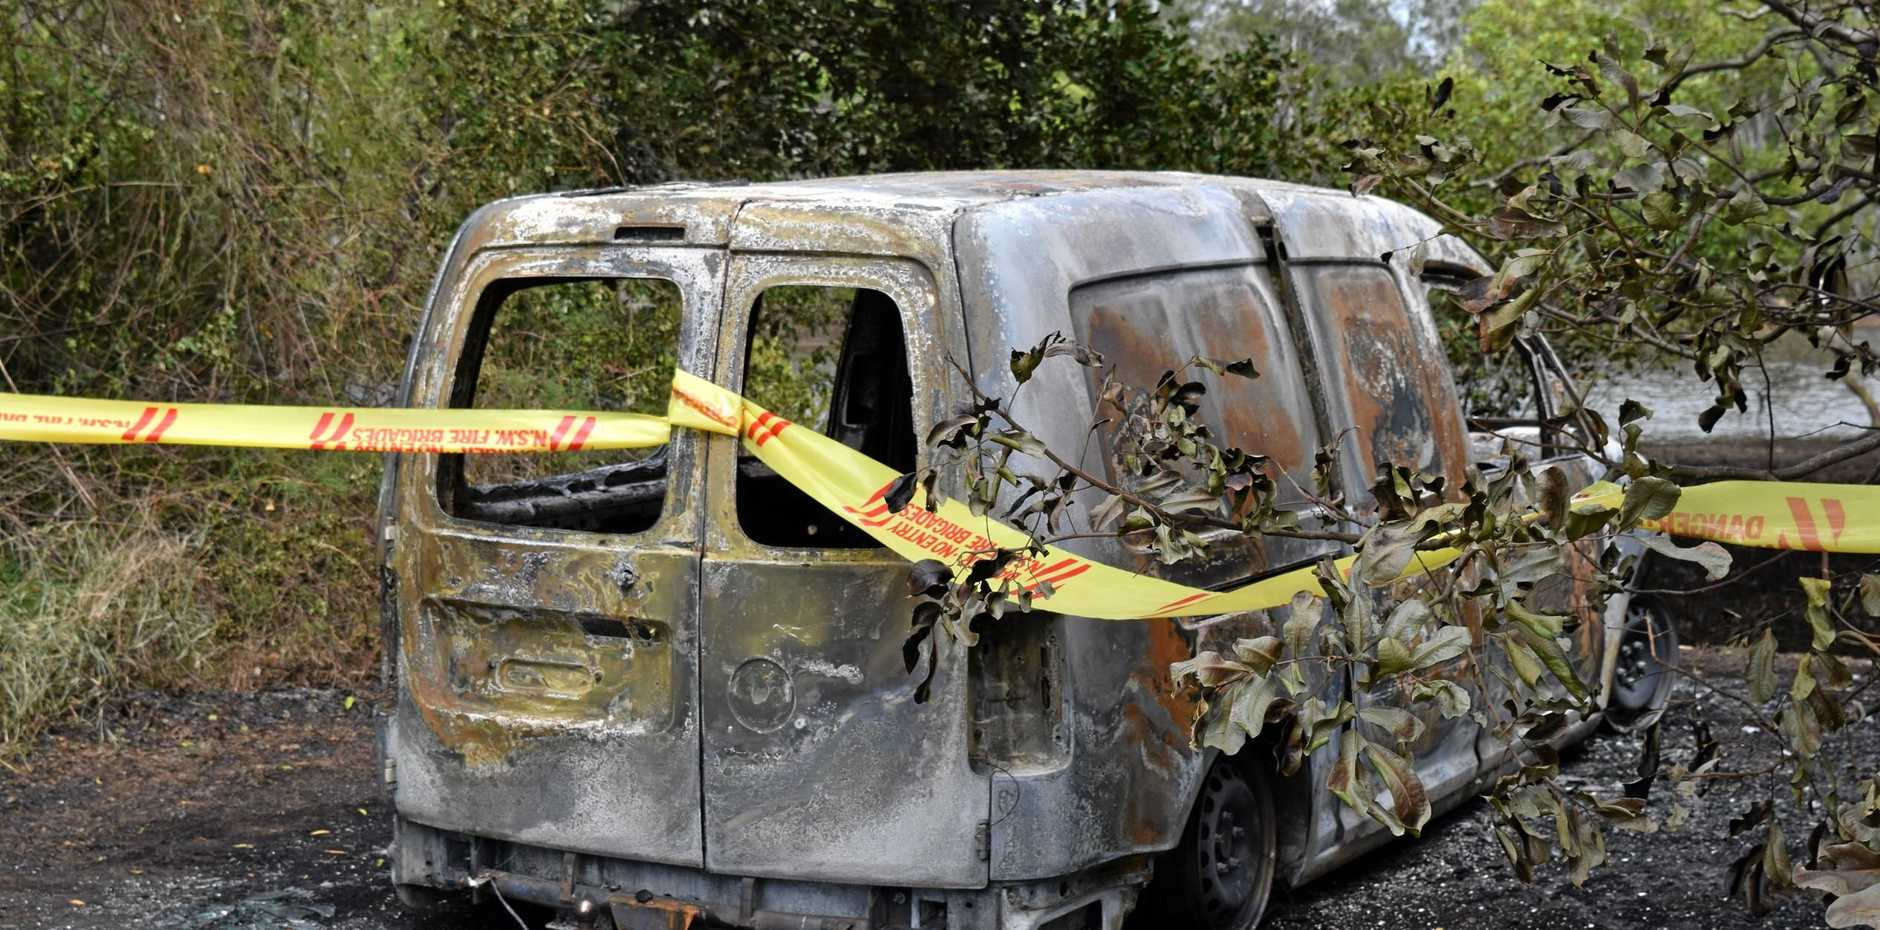 The charred remains of Chris Cook's van at Bagot Park.  The van and disability scooter inside were stolen and set alight in the early hours of Tuesday, October 31.